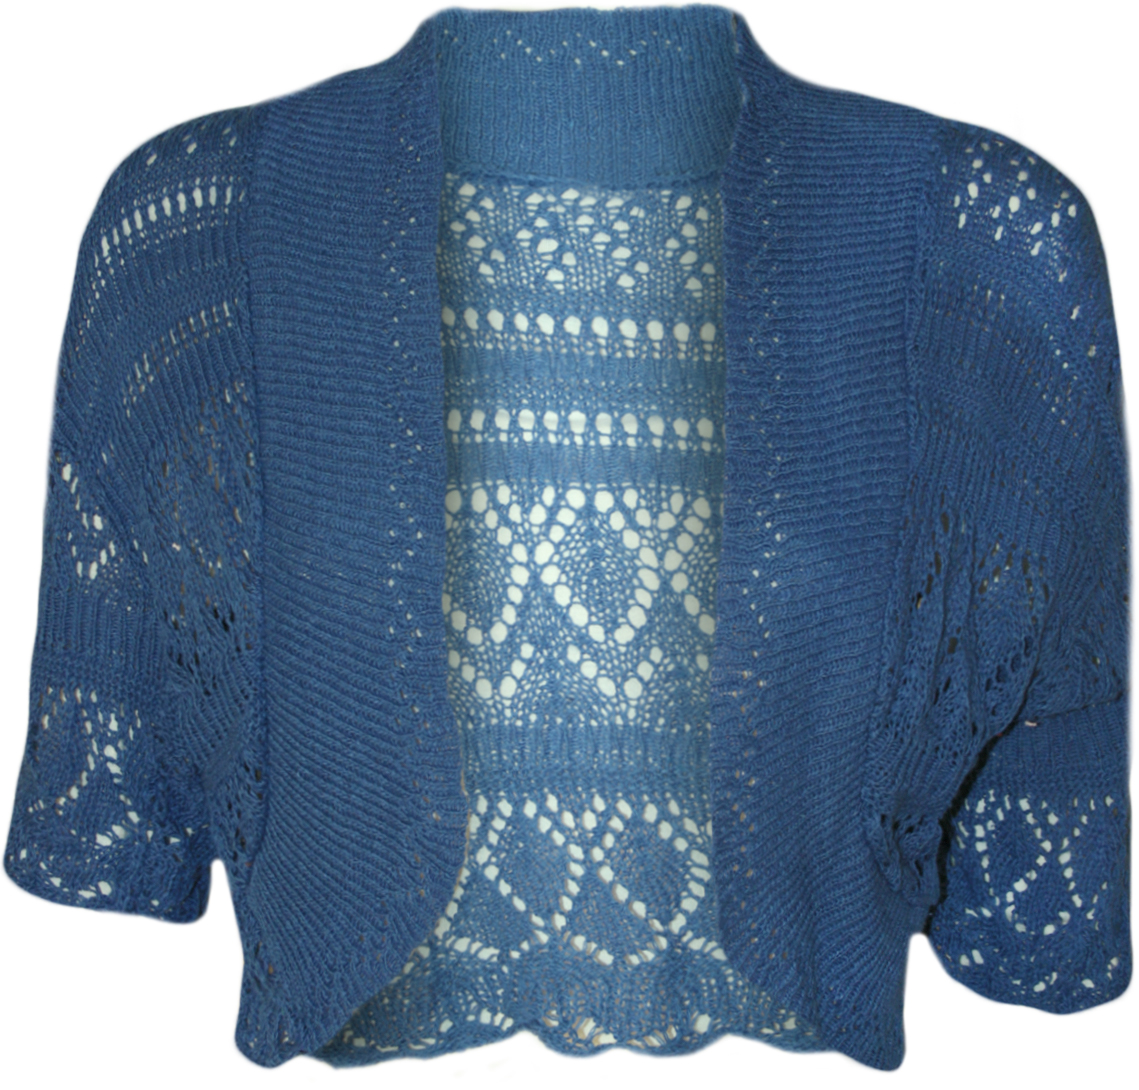 NEW Womens Crochet Knitted Short Sleeve Ladies Bolero Cardigan TOP Shrug 14 1...